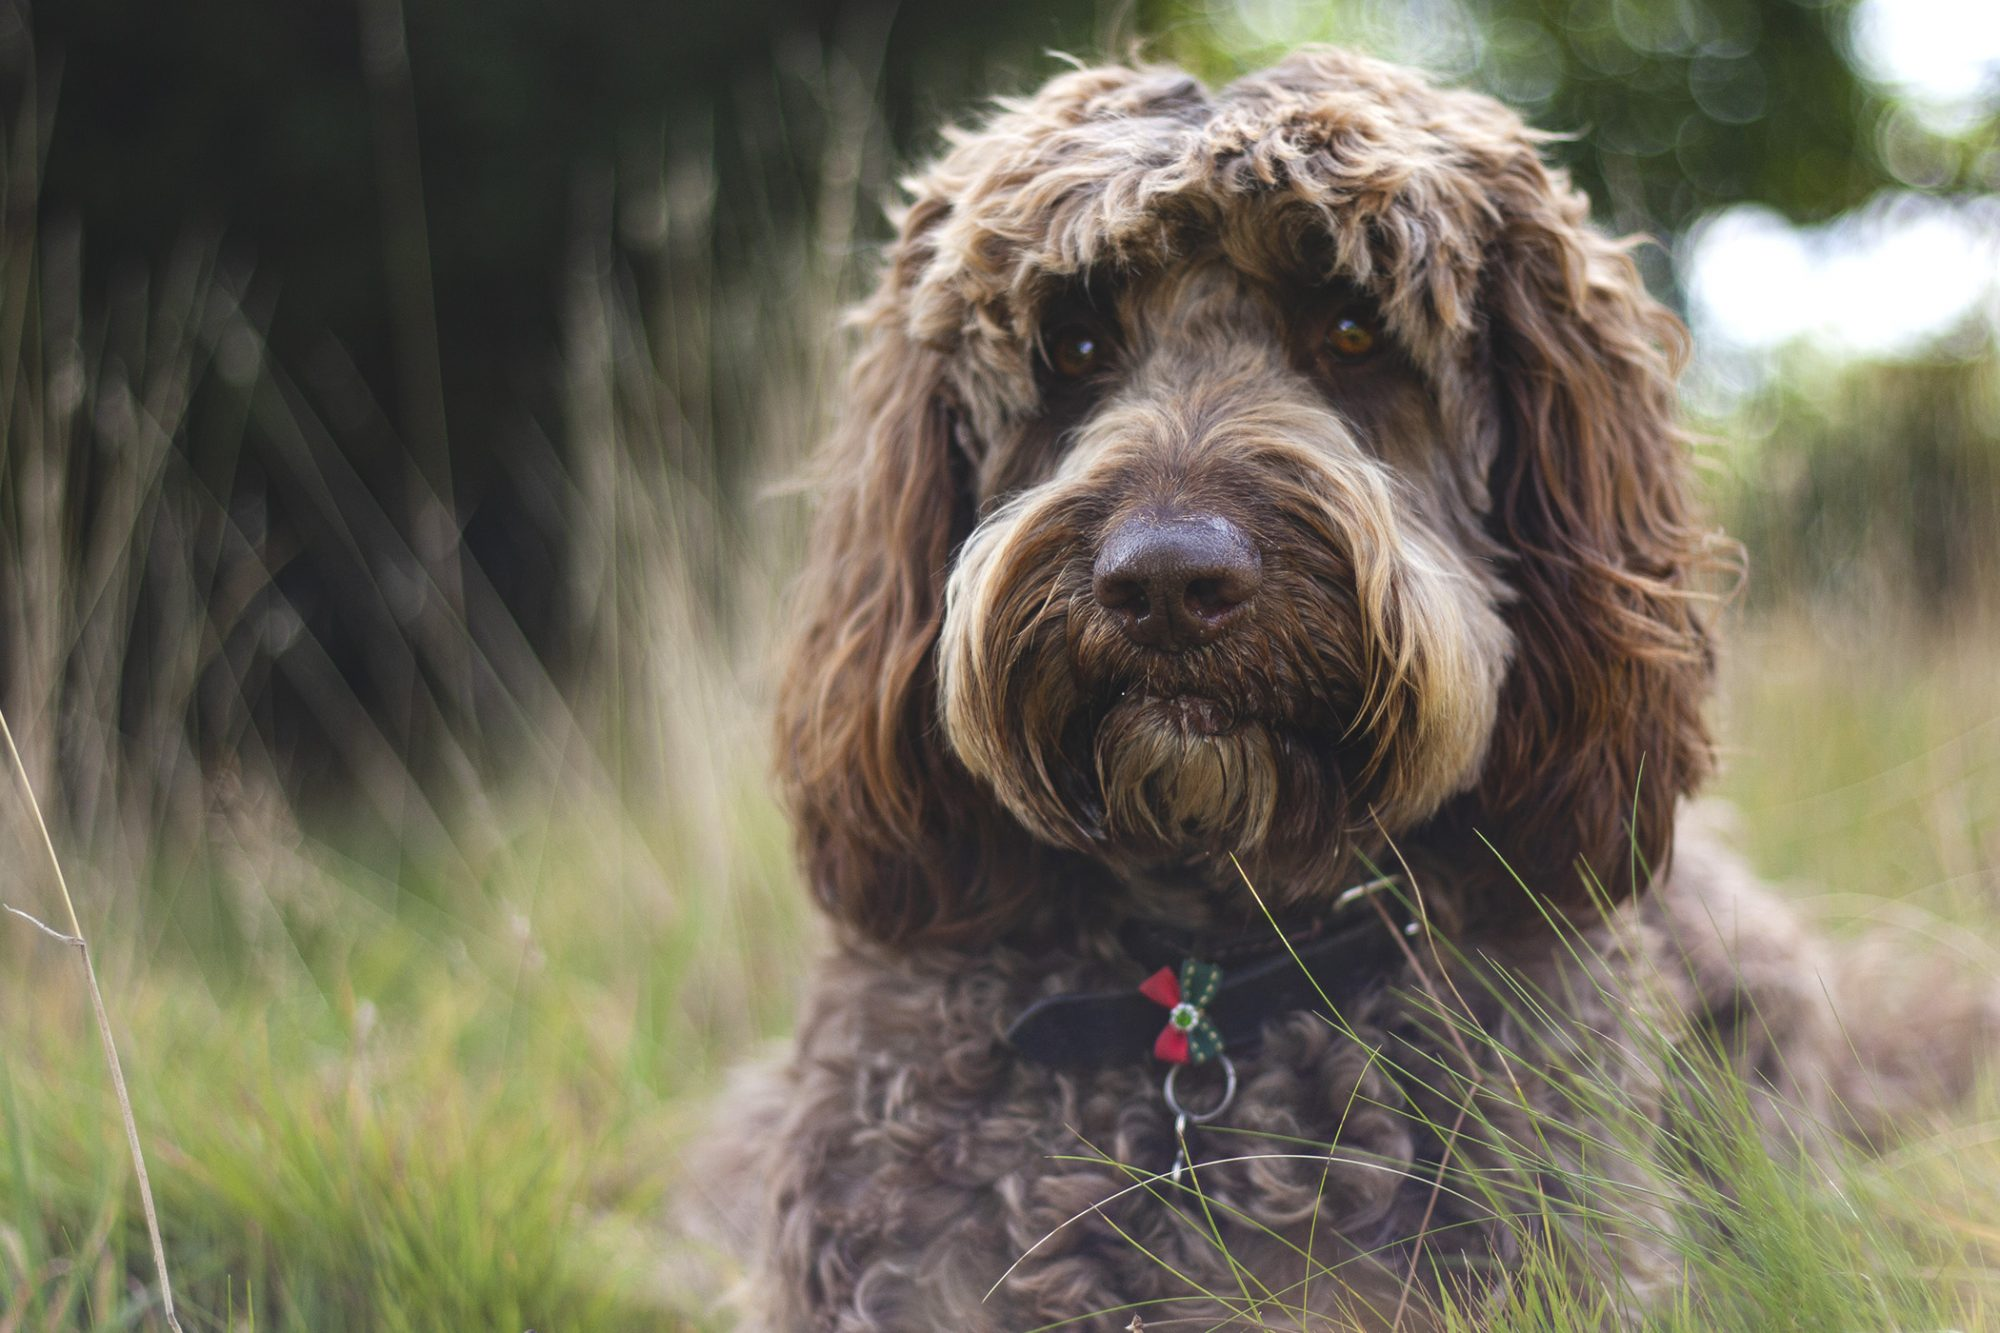 Chocolate labradoodle lays in grassy field